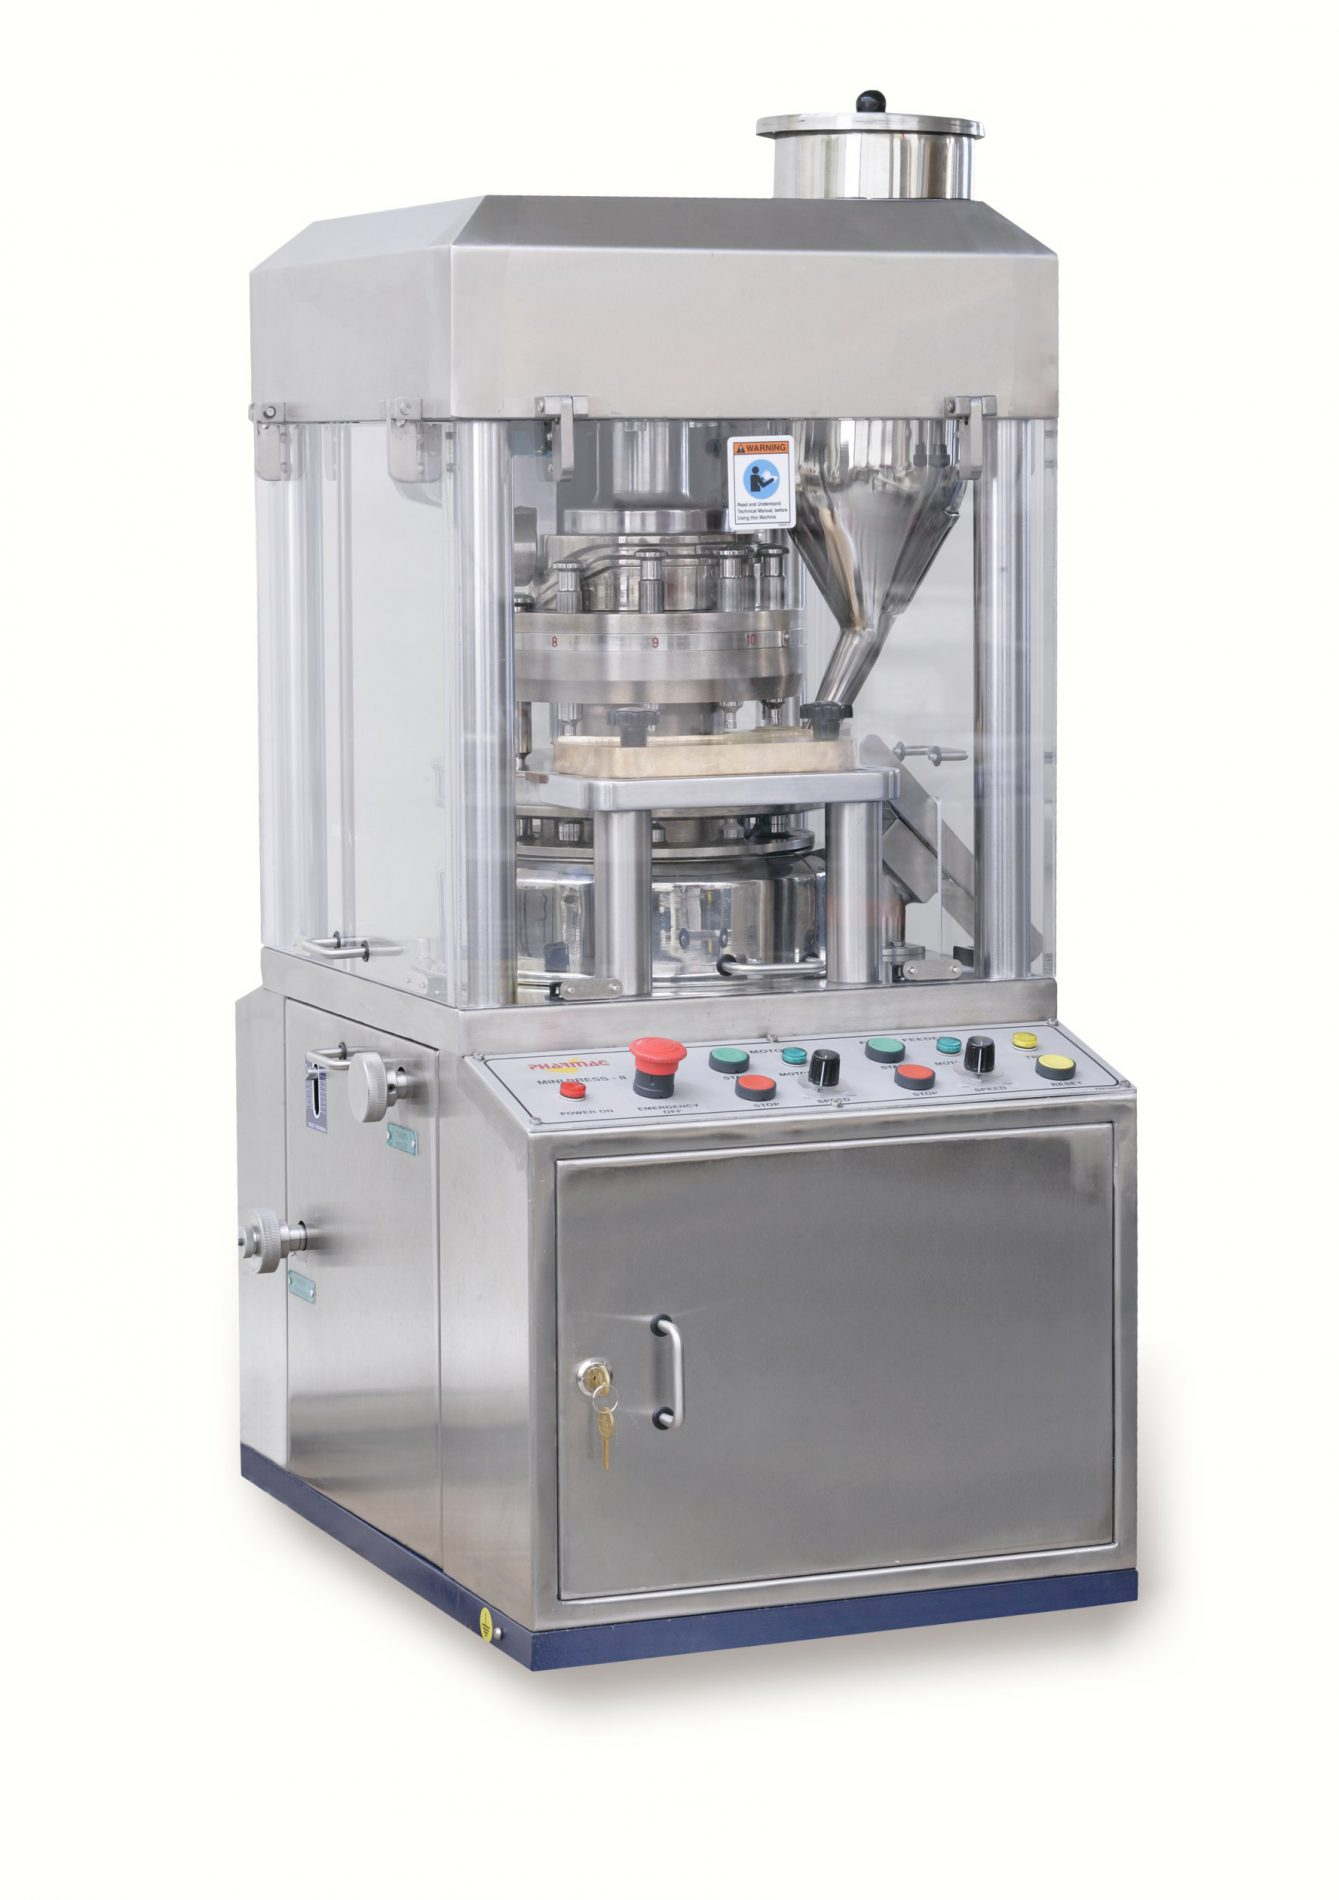 MiniPressII Rotary Tablet Press - Pharma Test